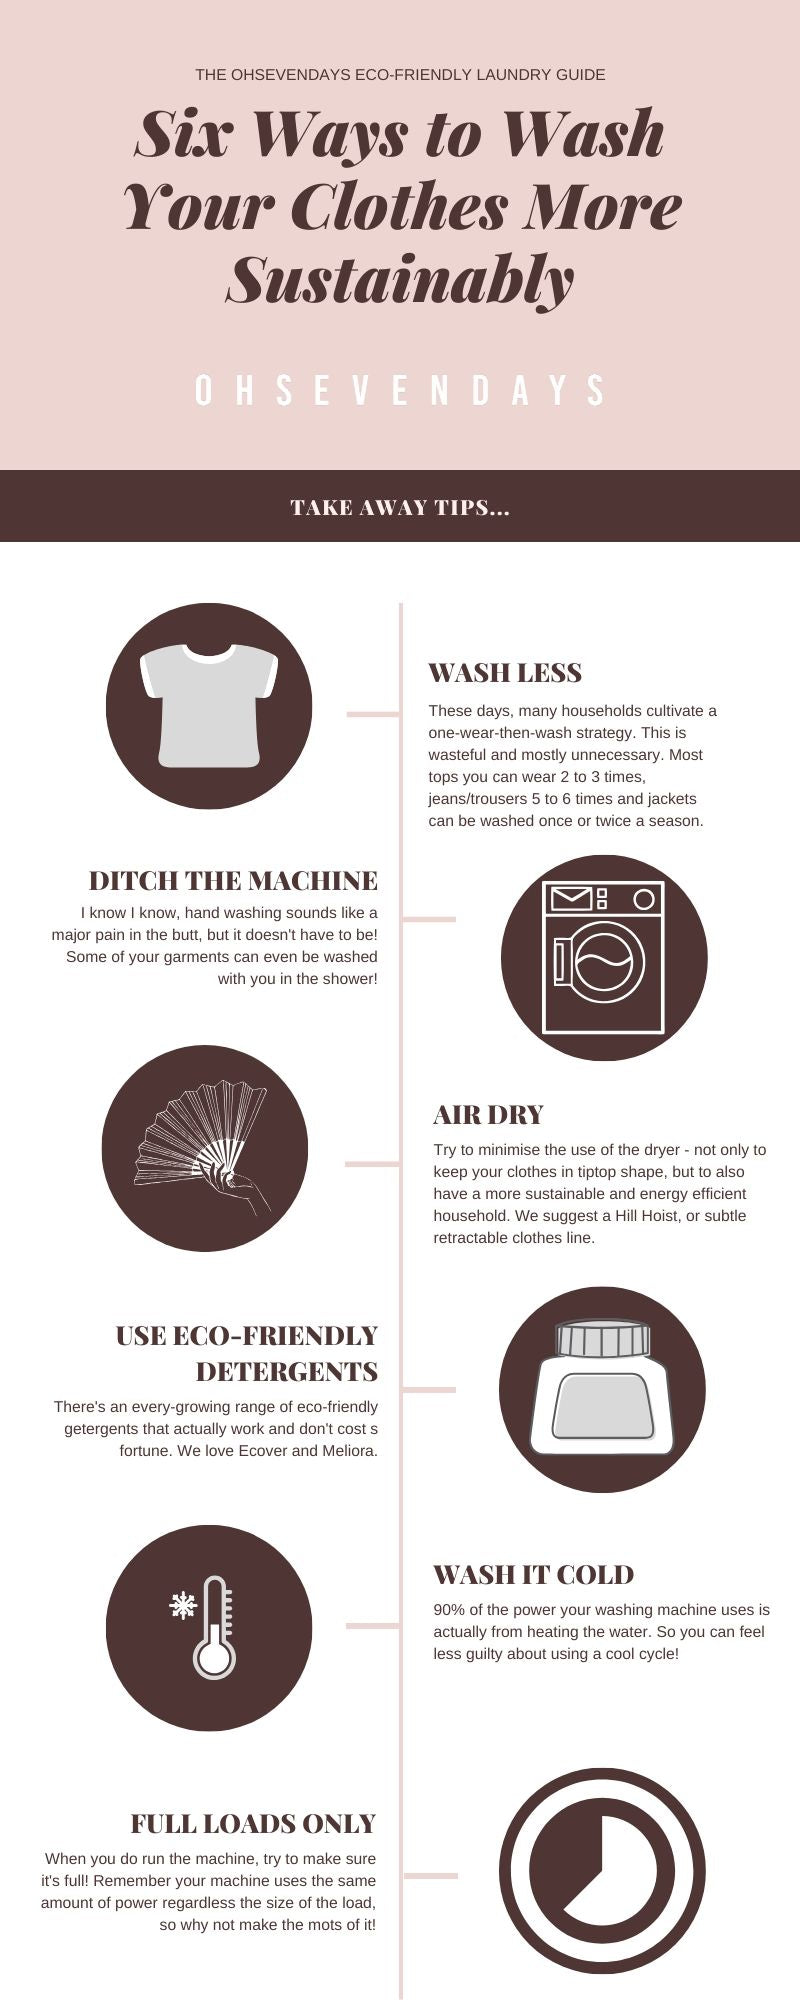 Eco Friendly Laundry Guide - How to wash your clothes most sustainably